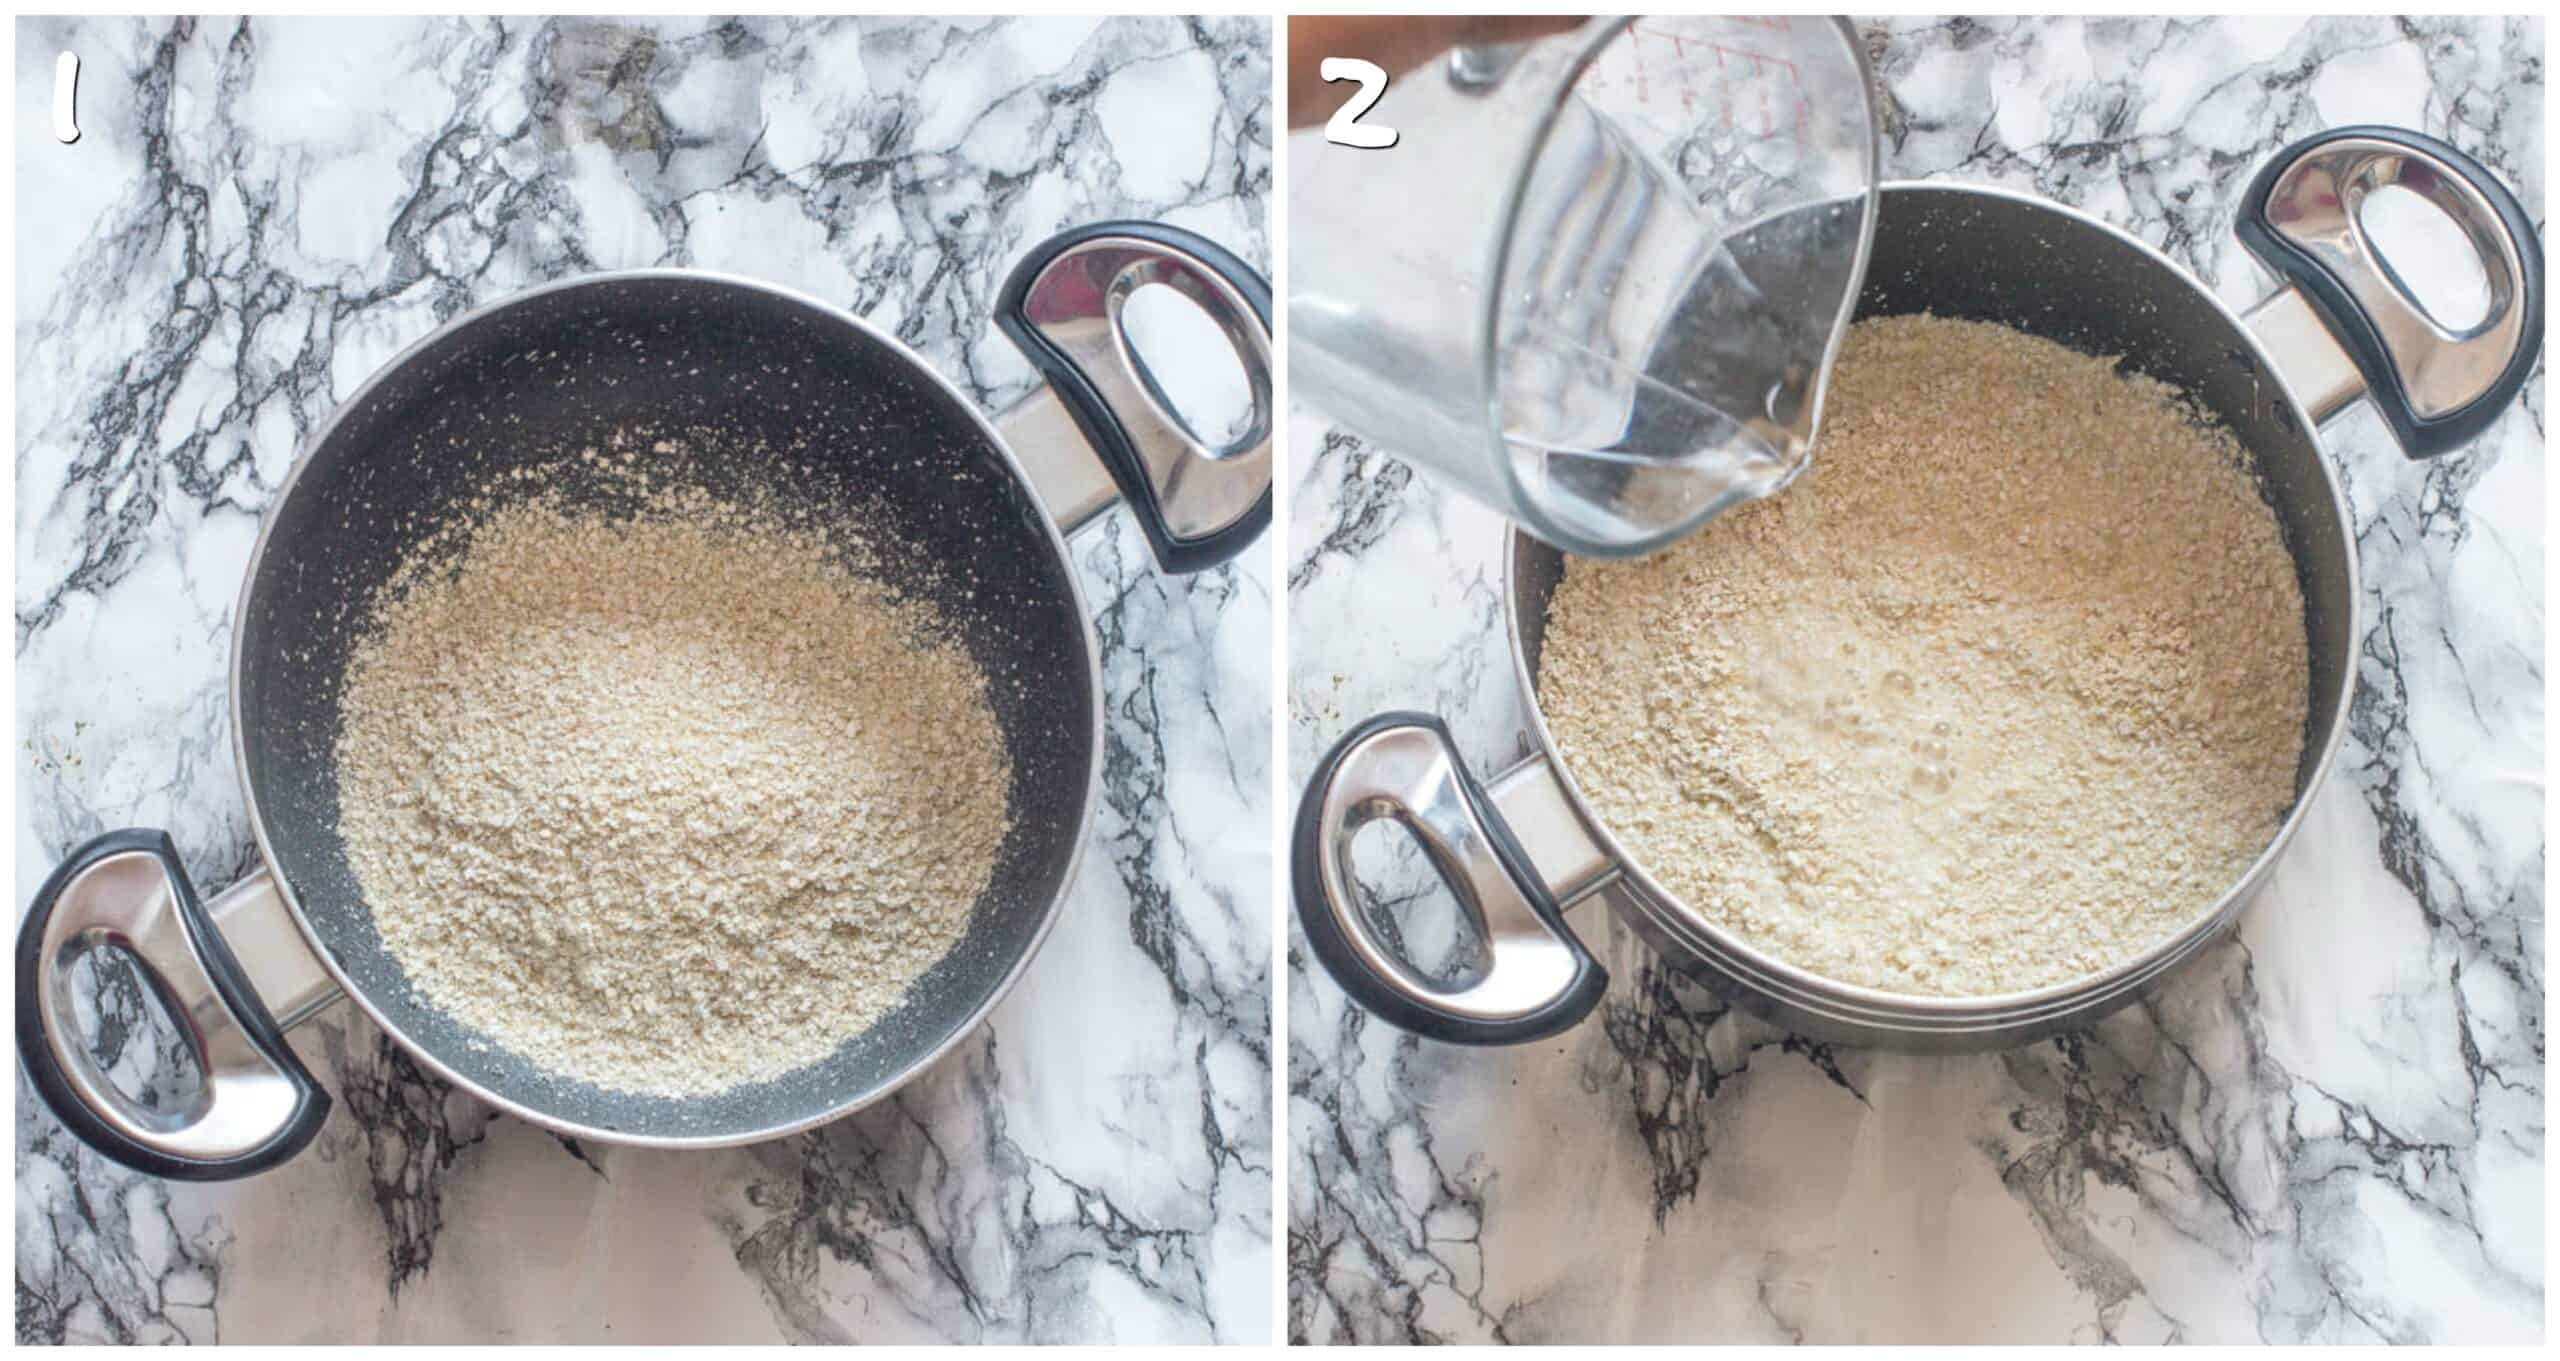 steps 1-2 adding millet and liquid to the saucepan